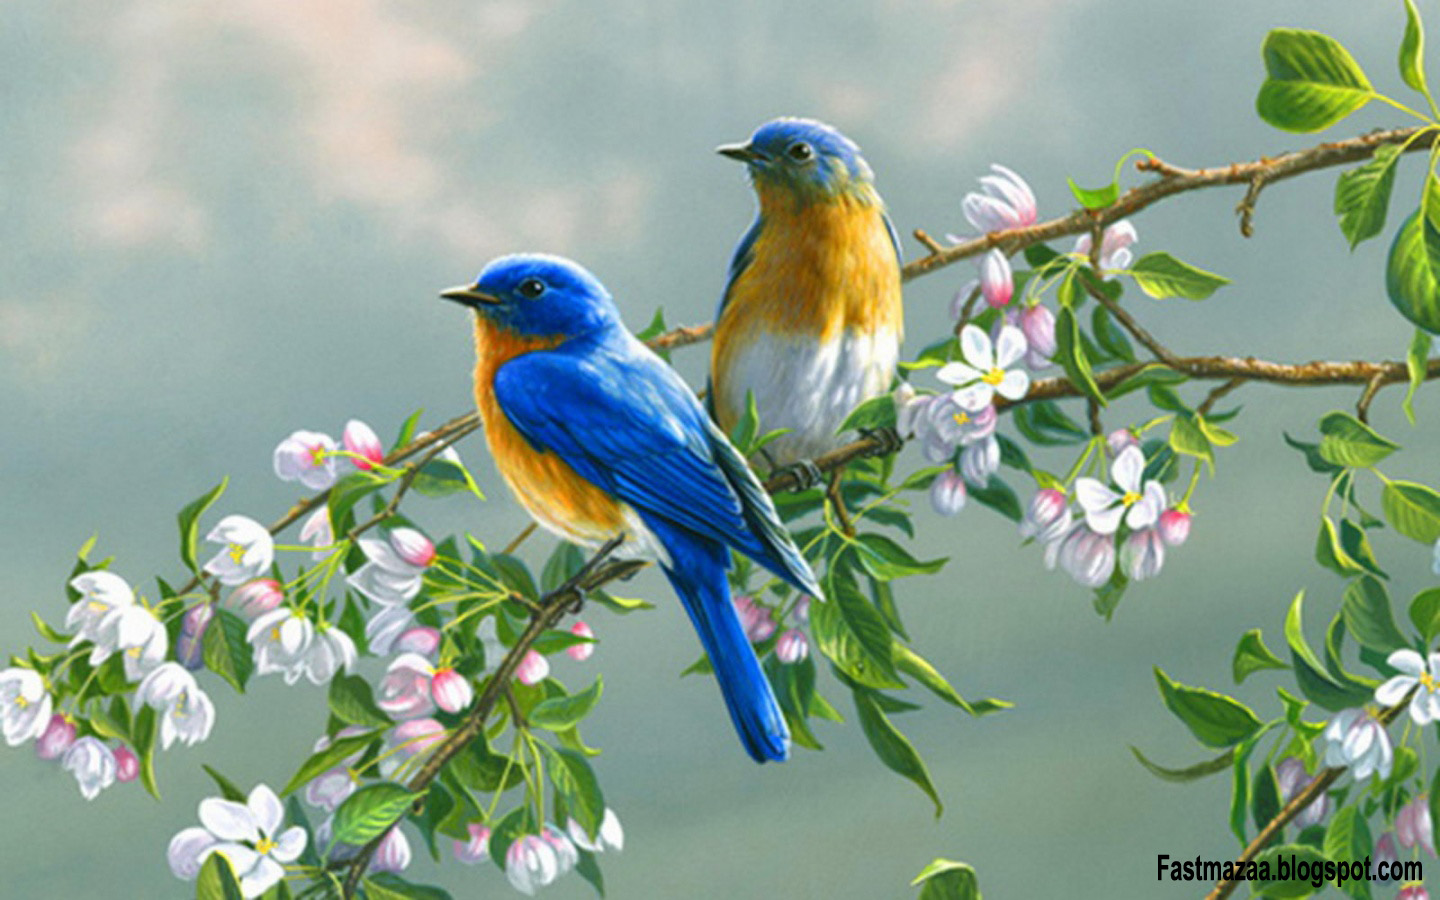 Love Birds Wallpapers: Fast Maza: NEW COLORFUL HD BIRDS WALLPAPER